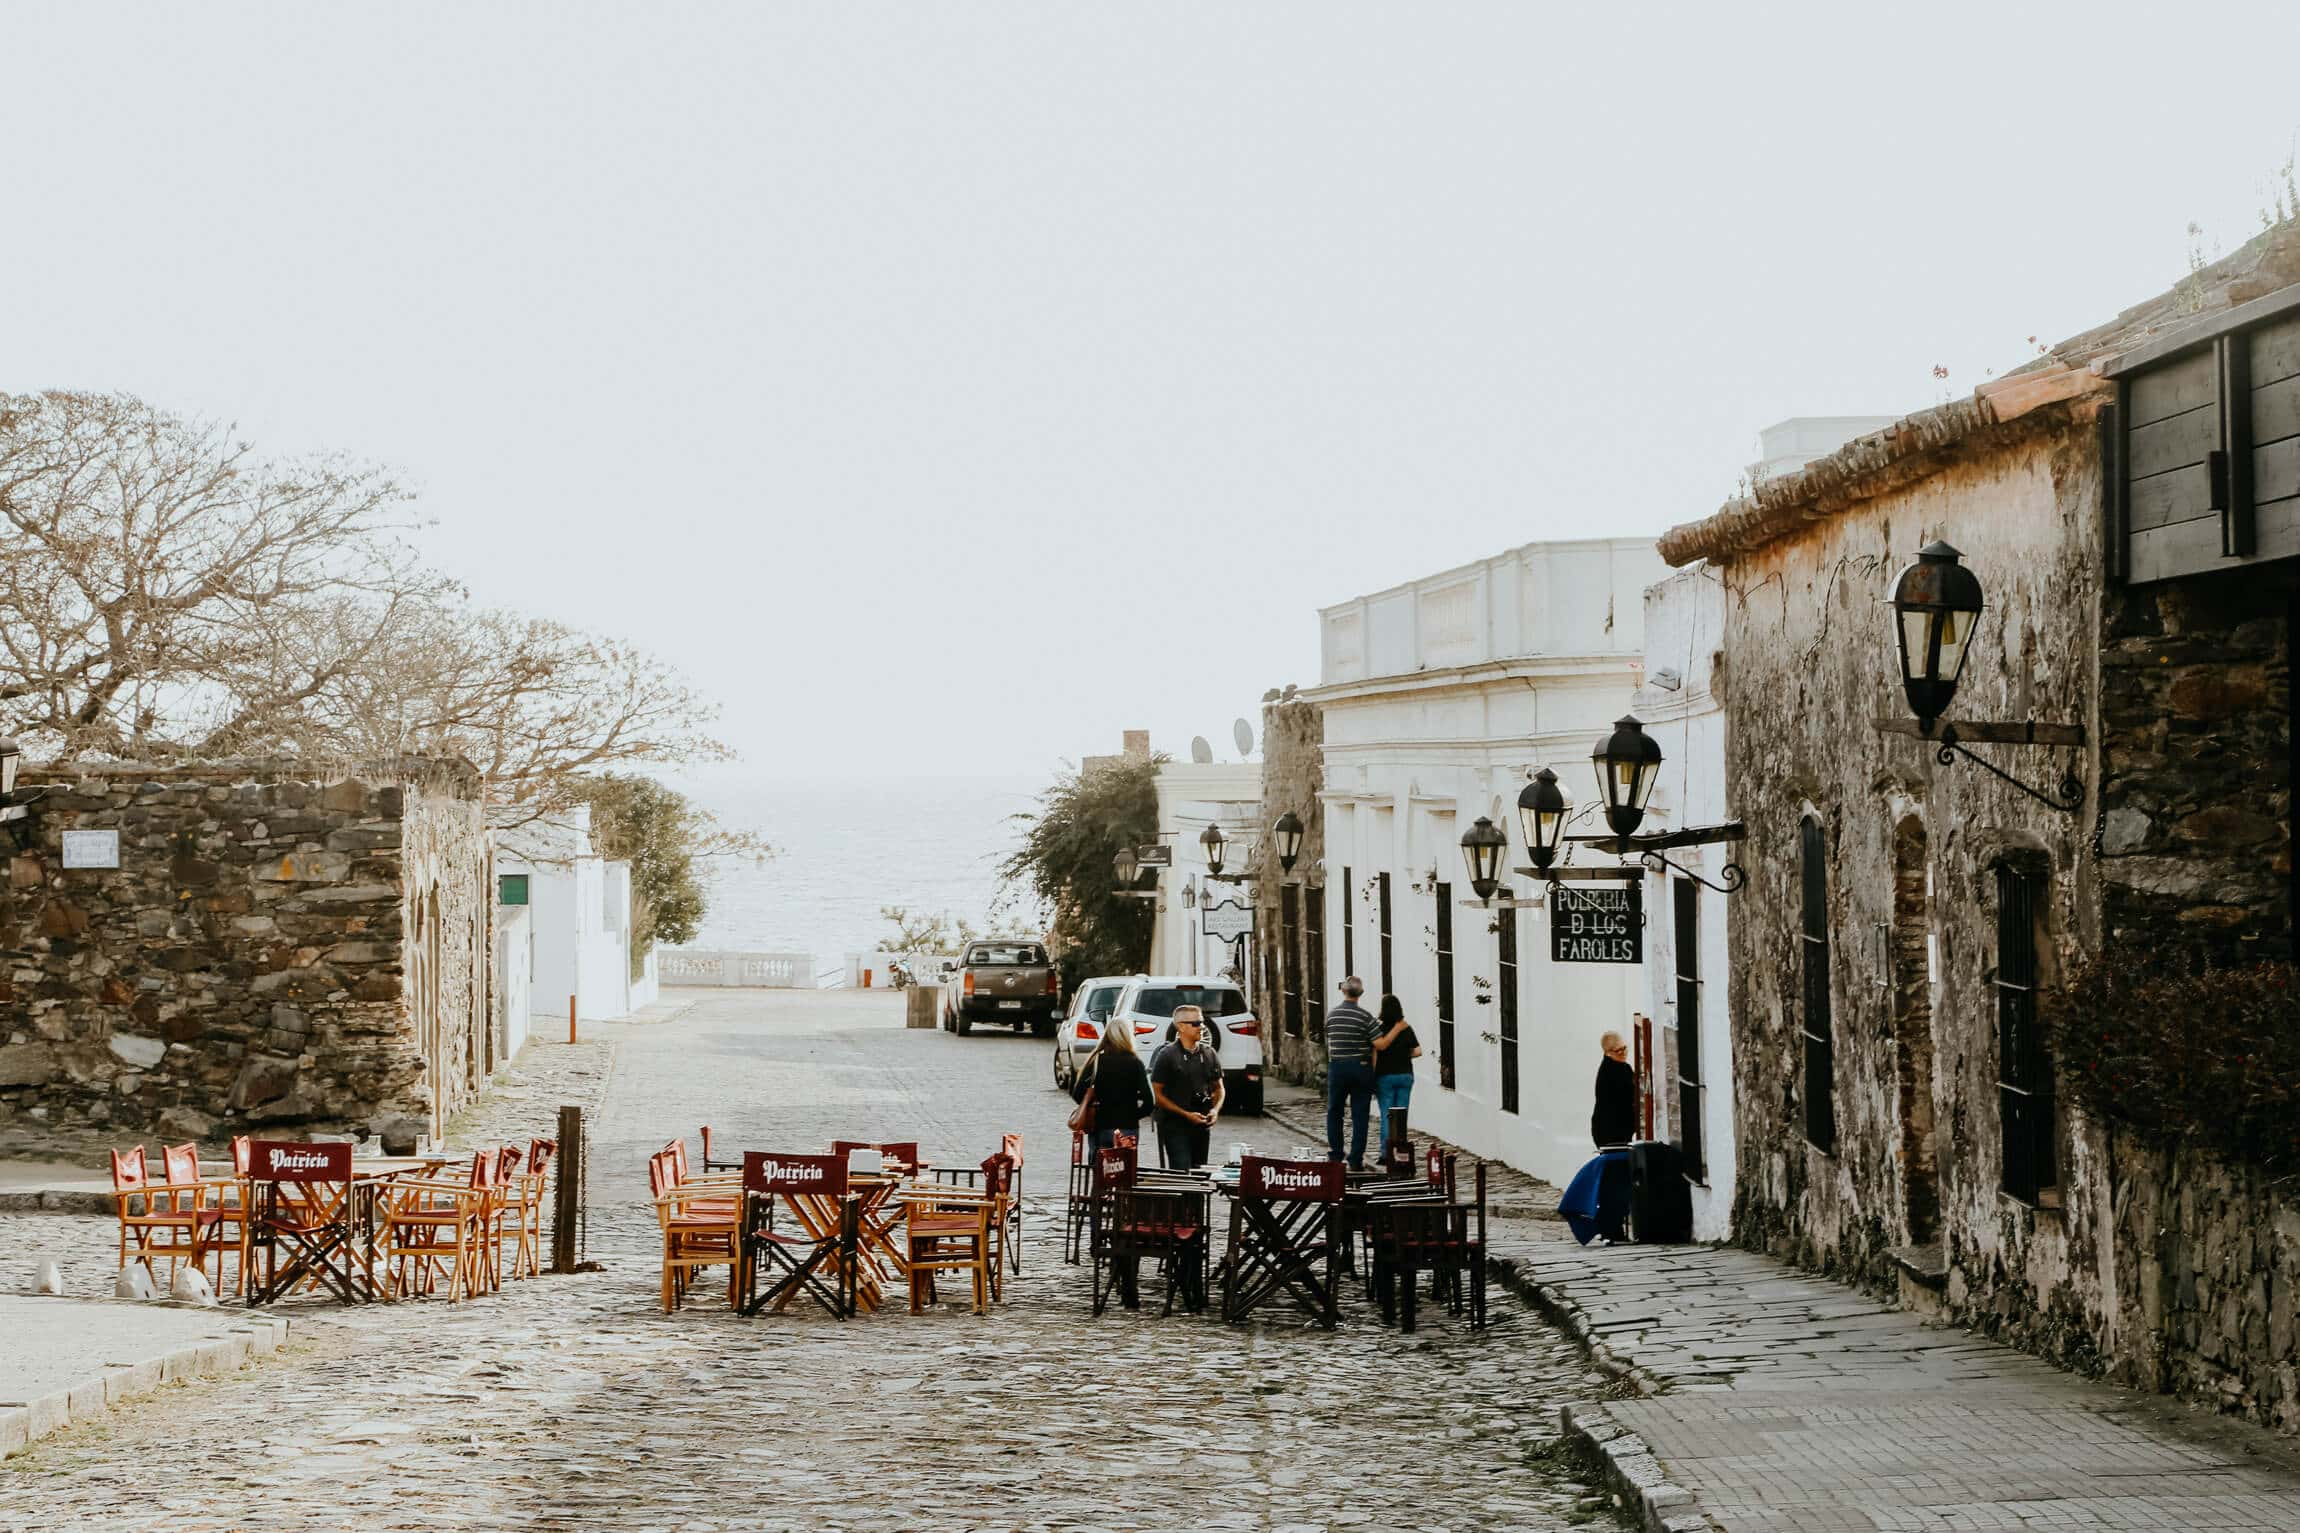 Tables and chairs on a cobblestone street by colonial buildings